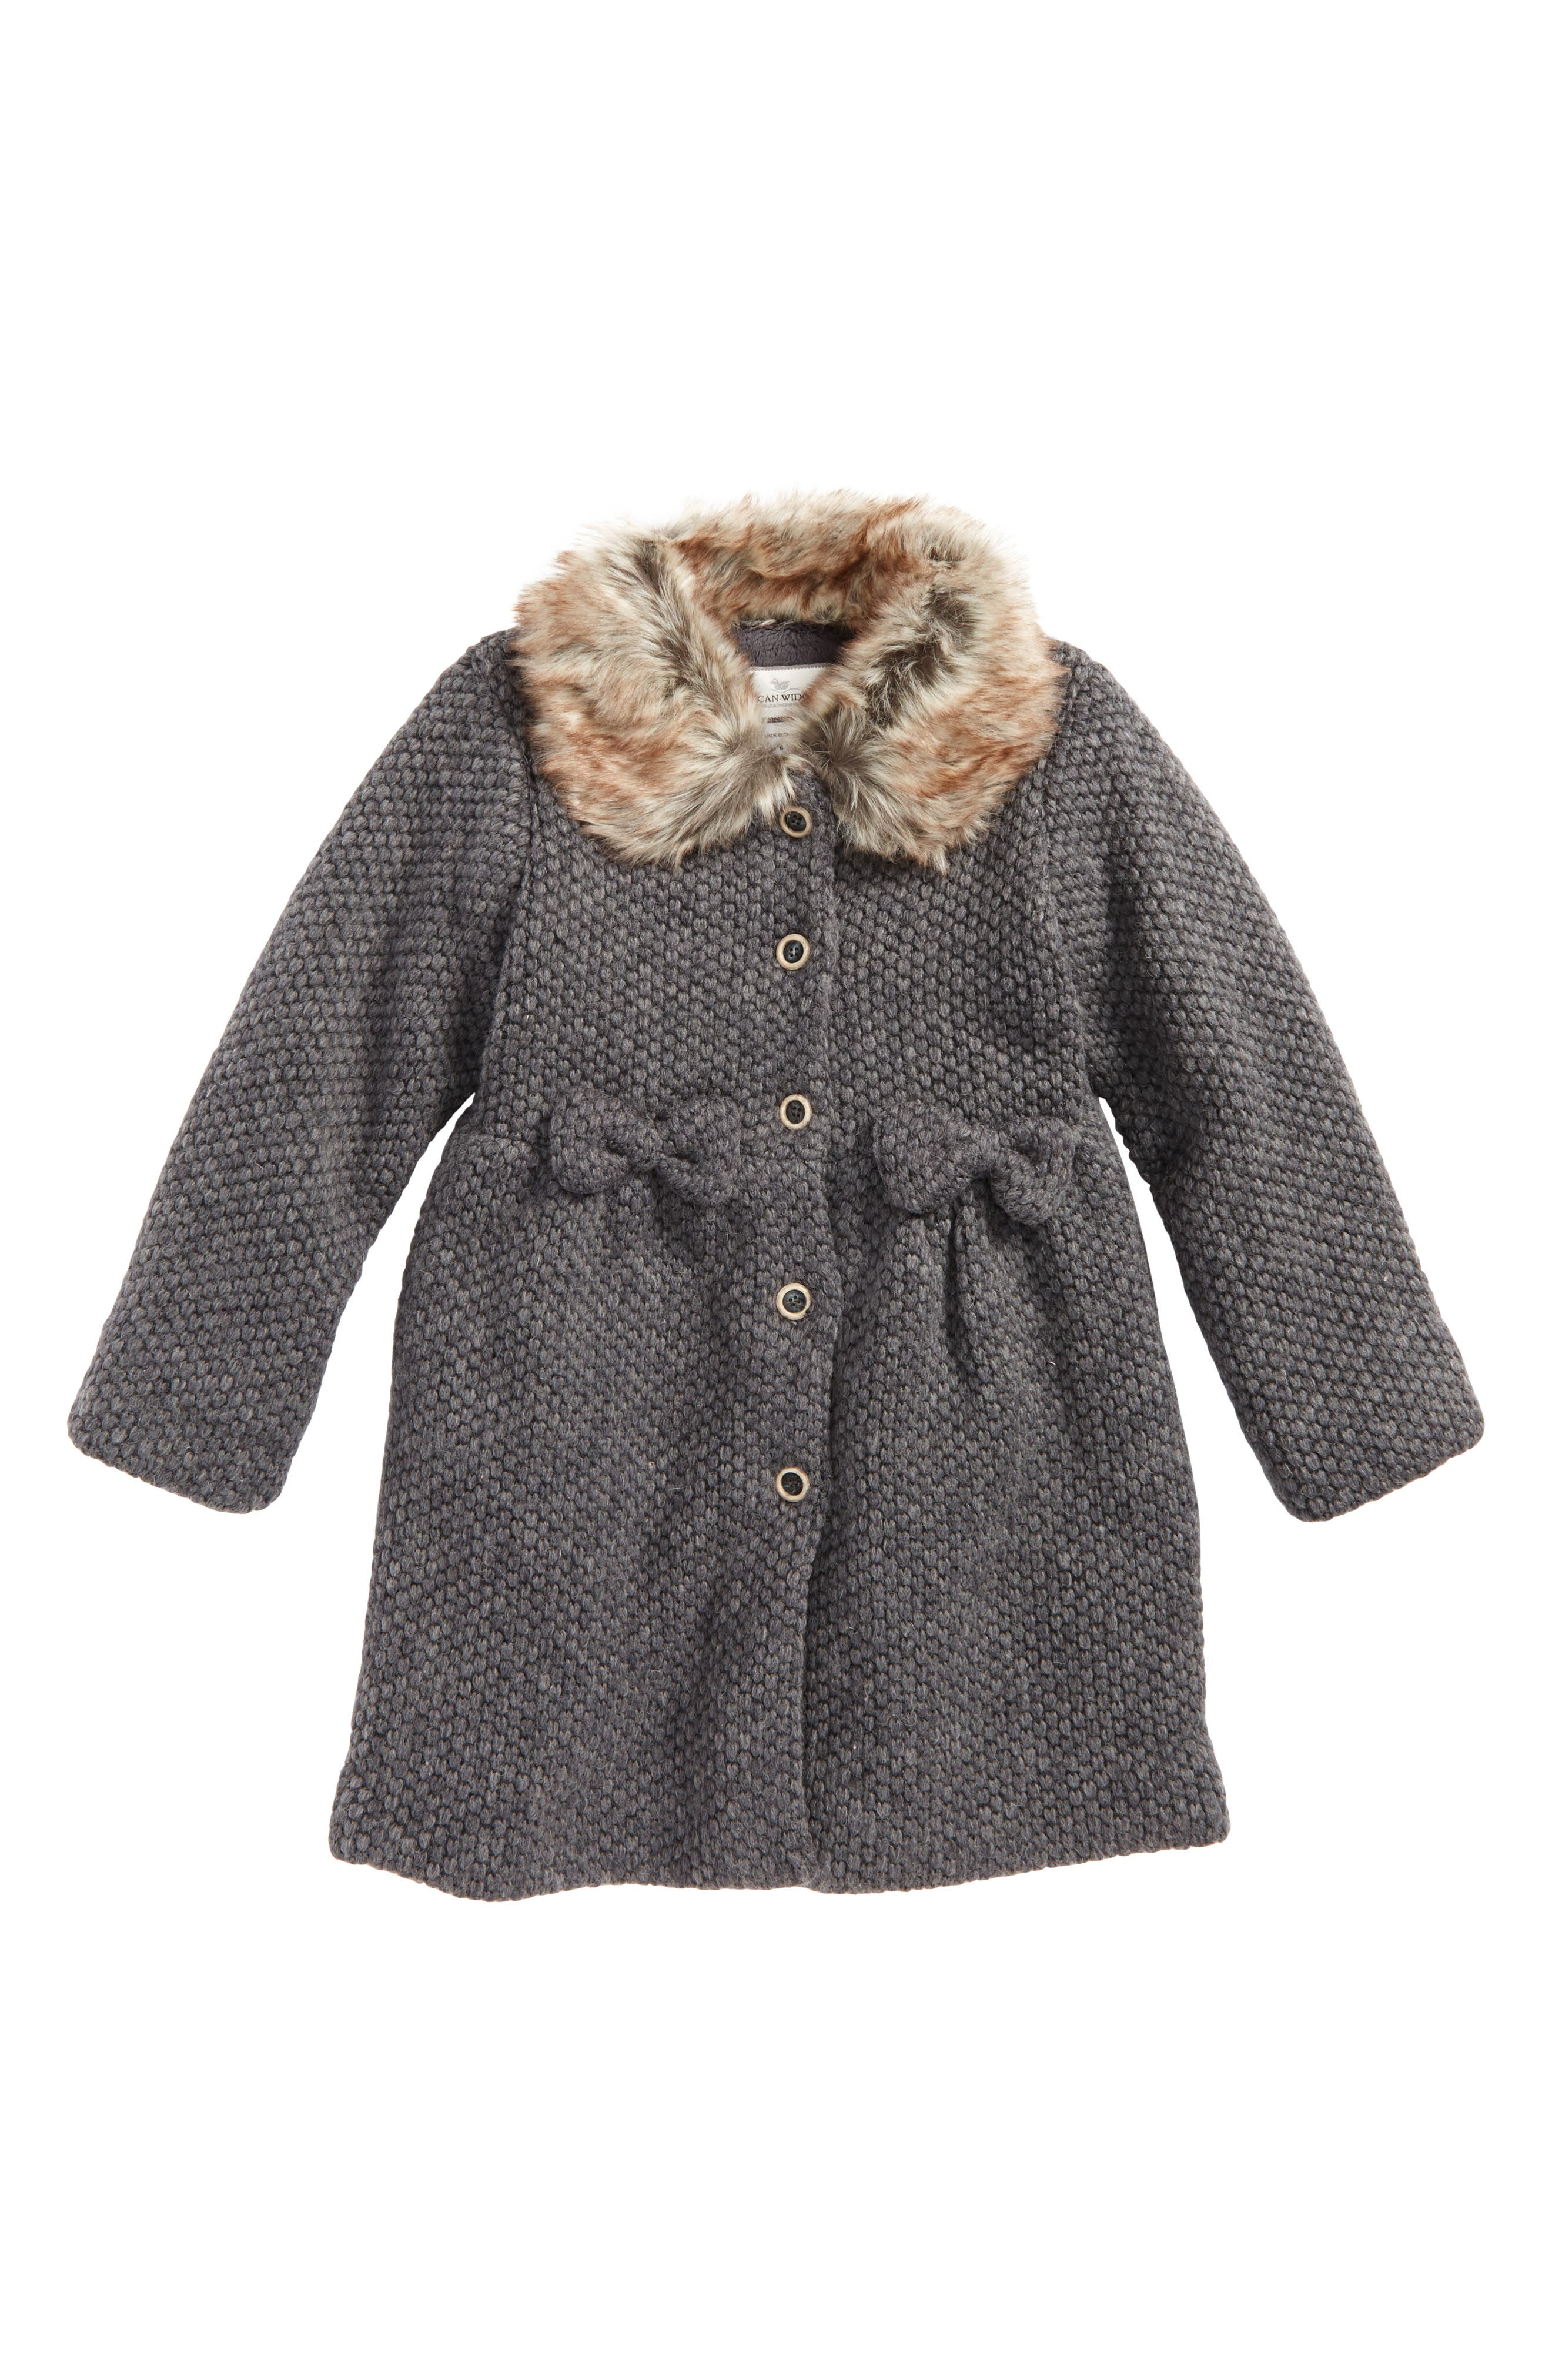 Widgeon Faux Fur Collar Coat (Toddler Girls & Little Girls)